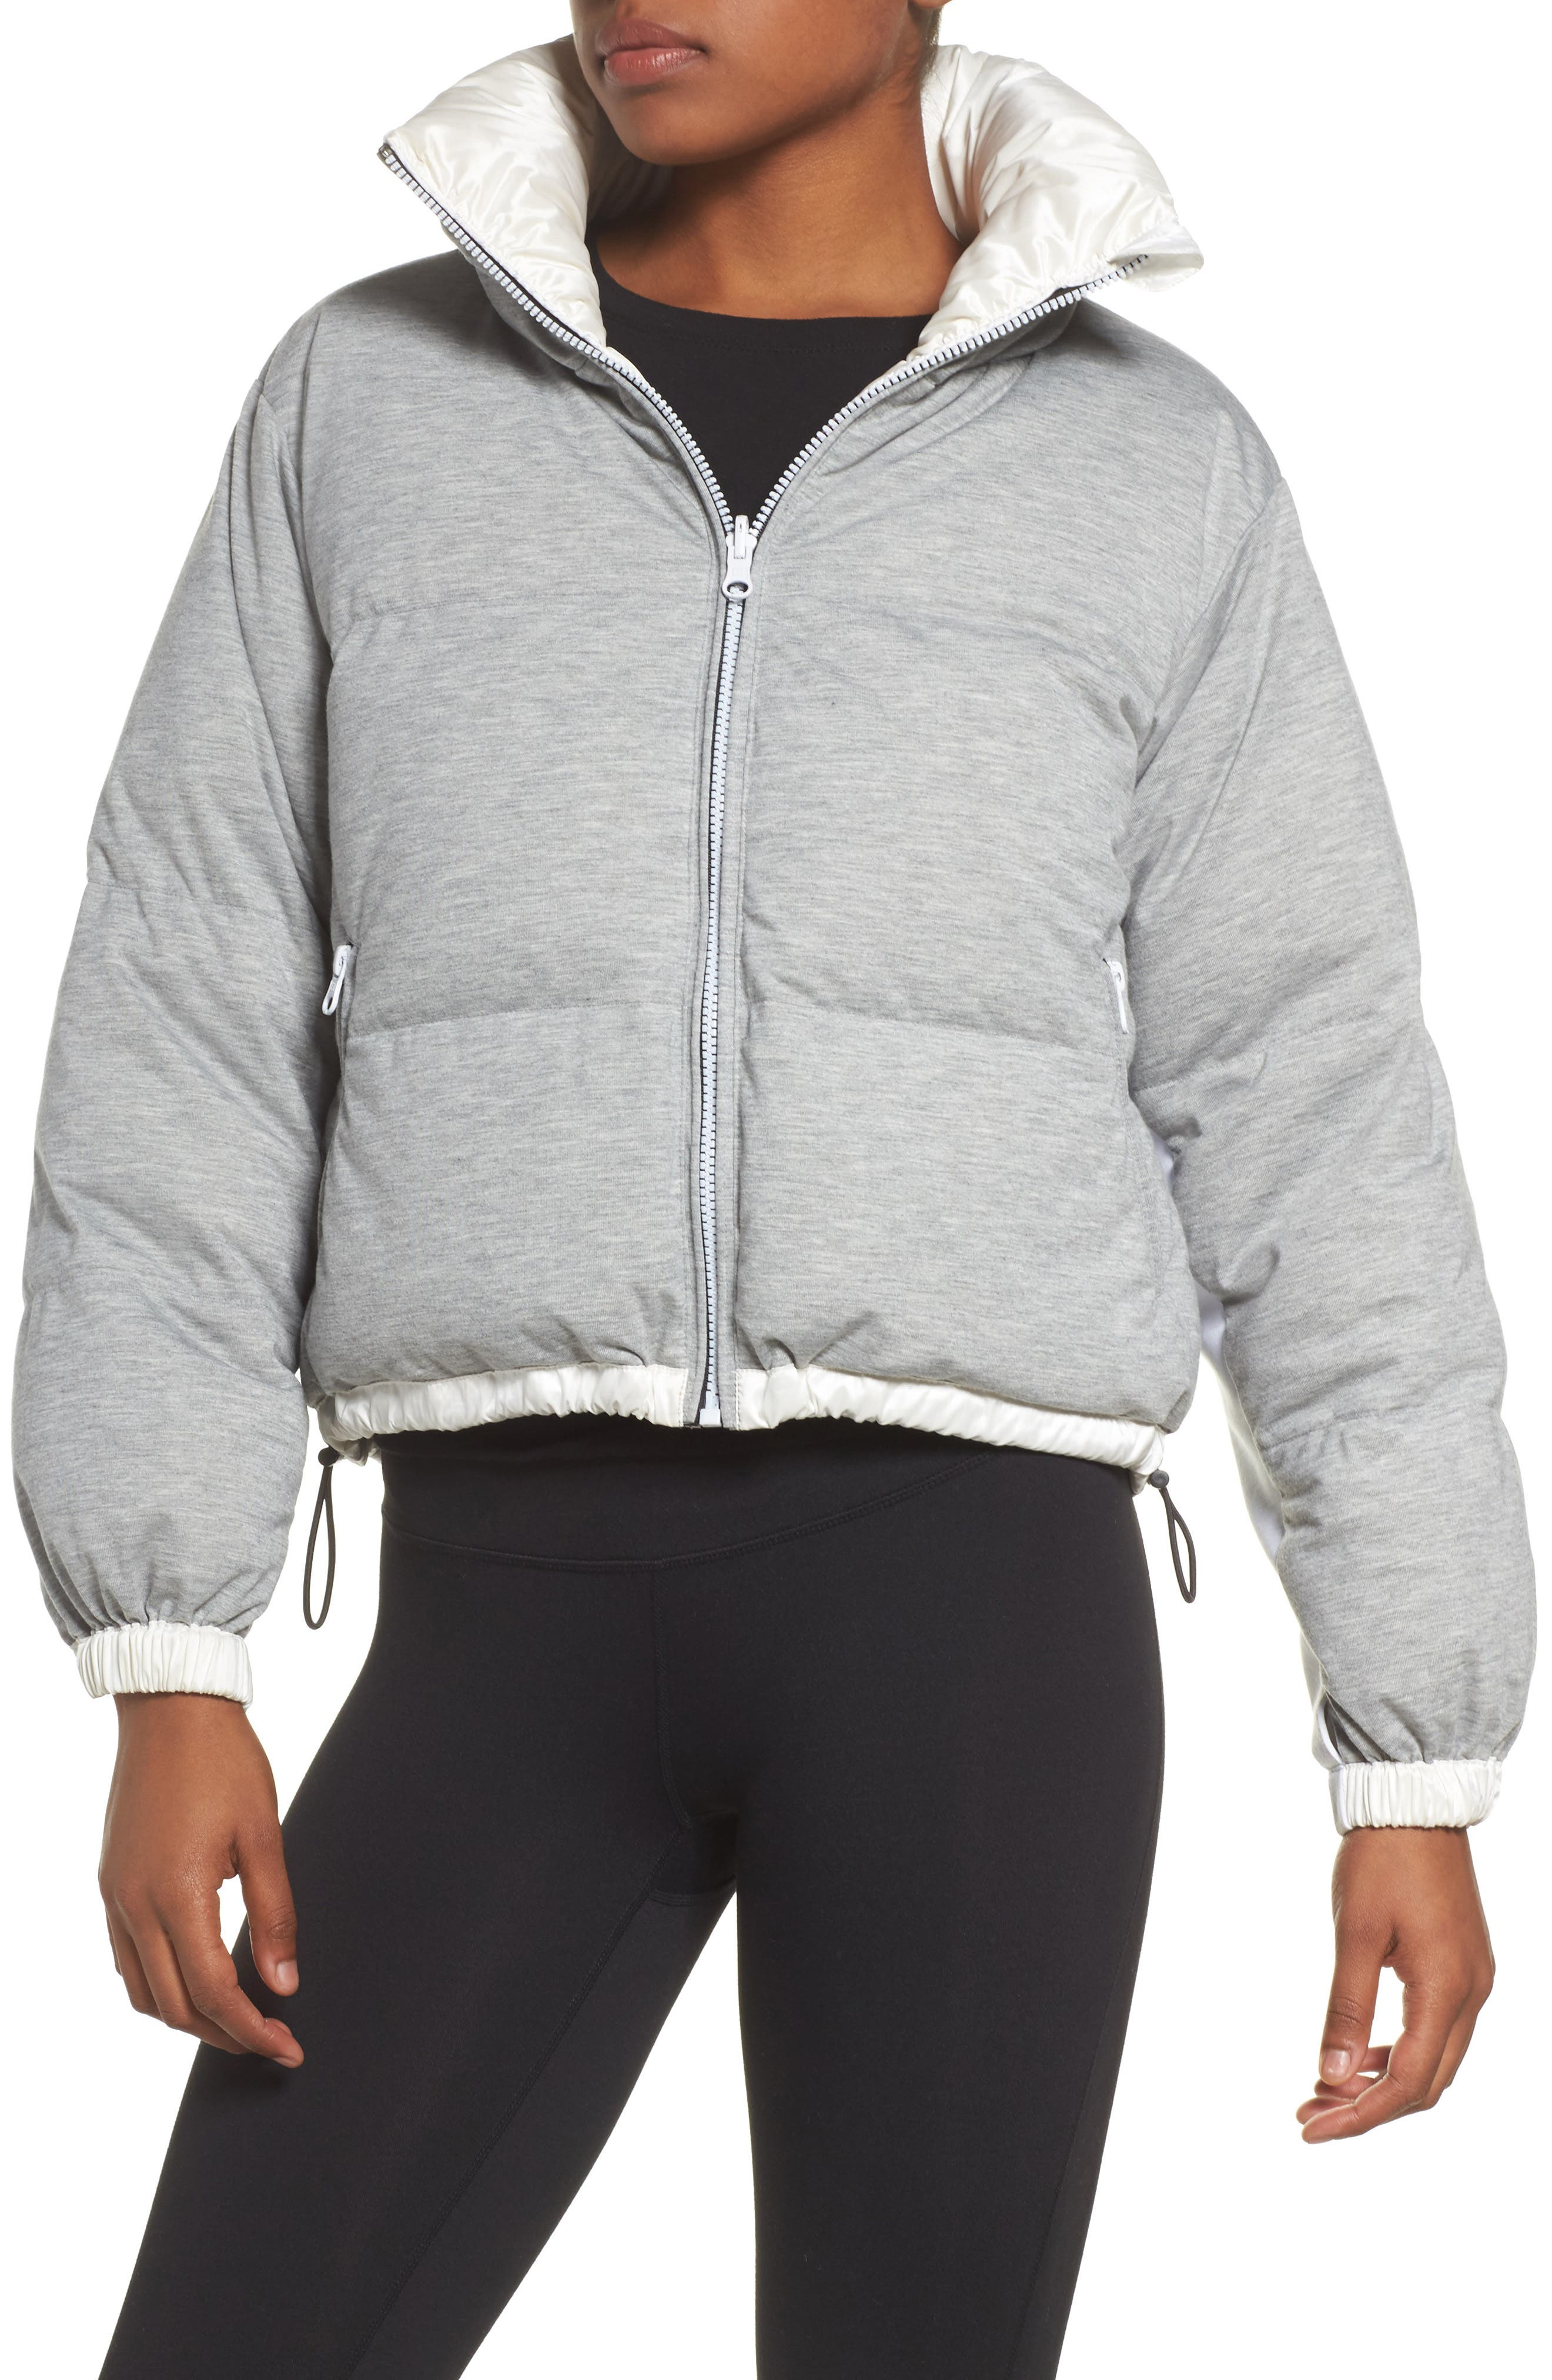 Reversible Puffer Jacket,                             Alternate thumbnail 2, color,                             WHITE/HEATHER GREY